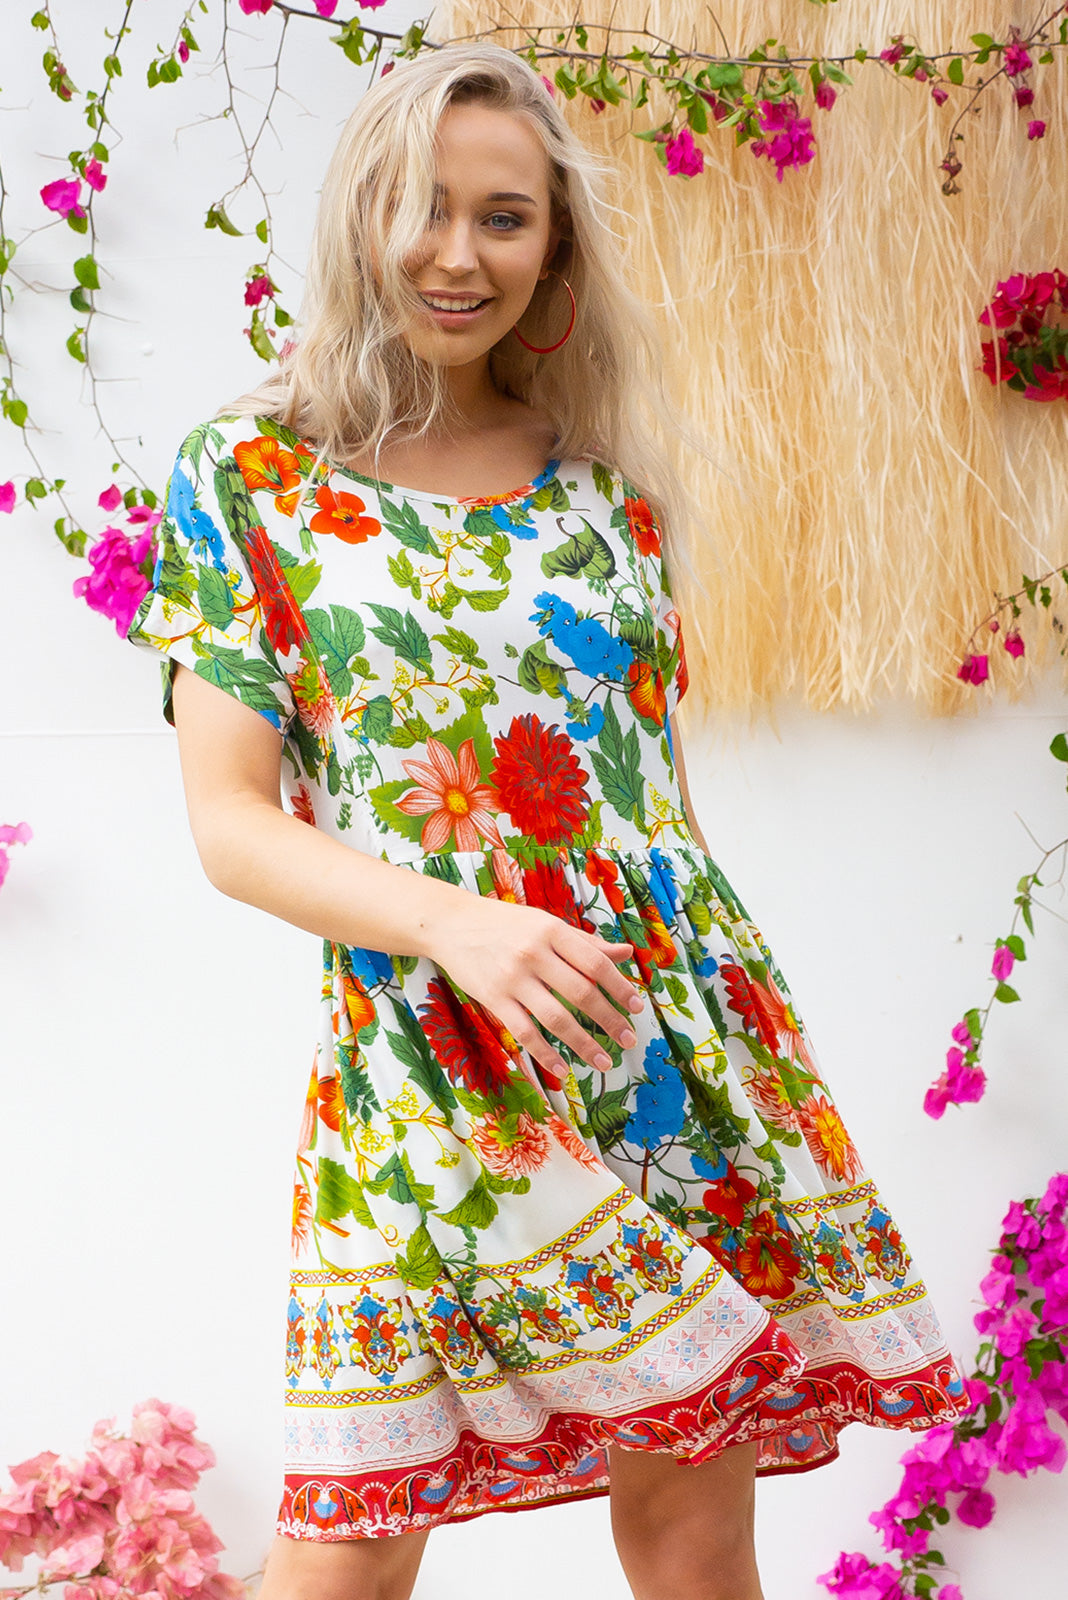 Blue Moon Milano Dress has a easy to wear relaxed fit and features cuffed sleeves, button tabs at the waist and comes in a beautiful vibrant white and bright floral print on woven rayon